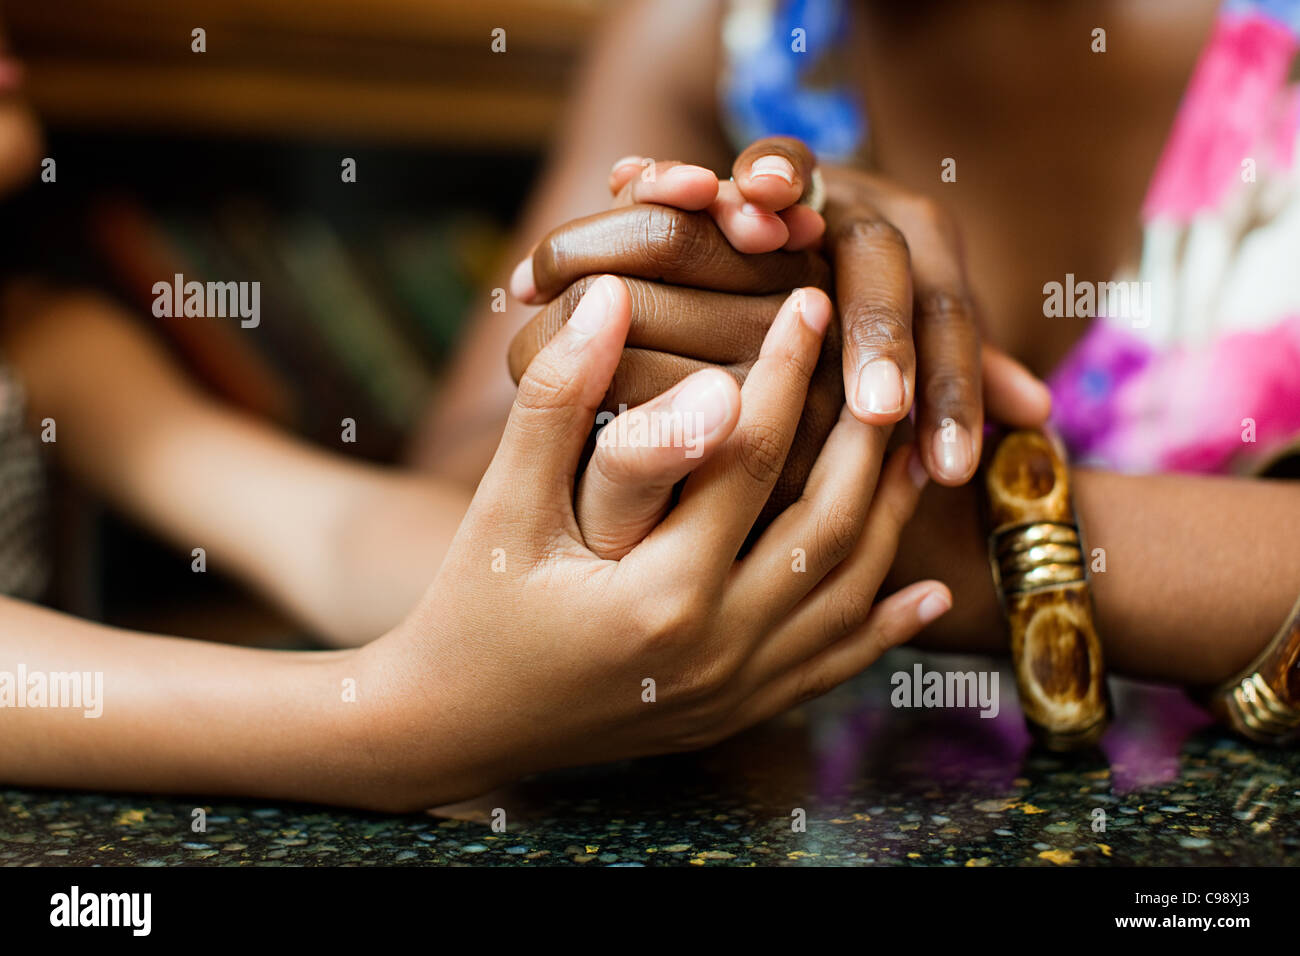 Mother and daughter holding hands in cafe - Stock Image